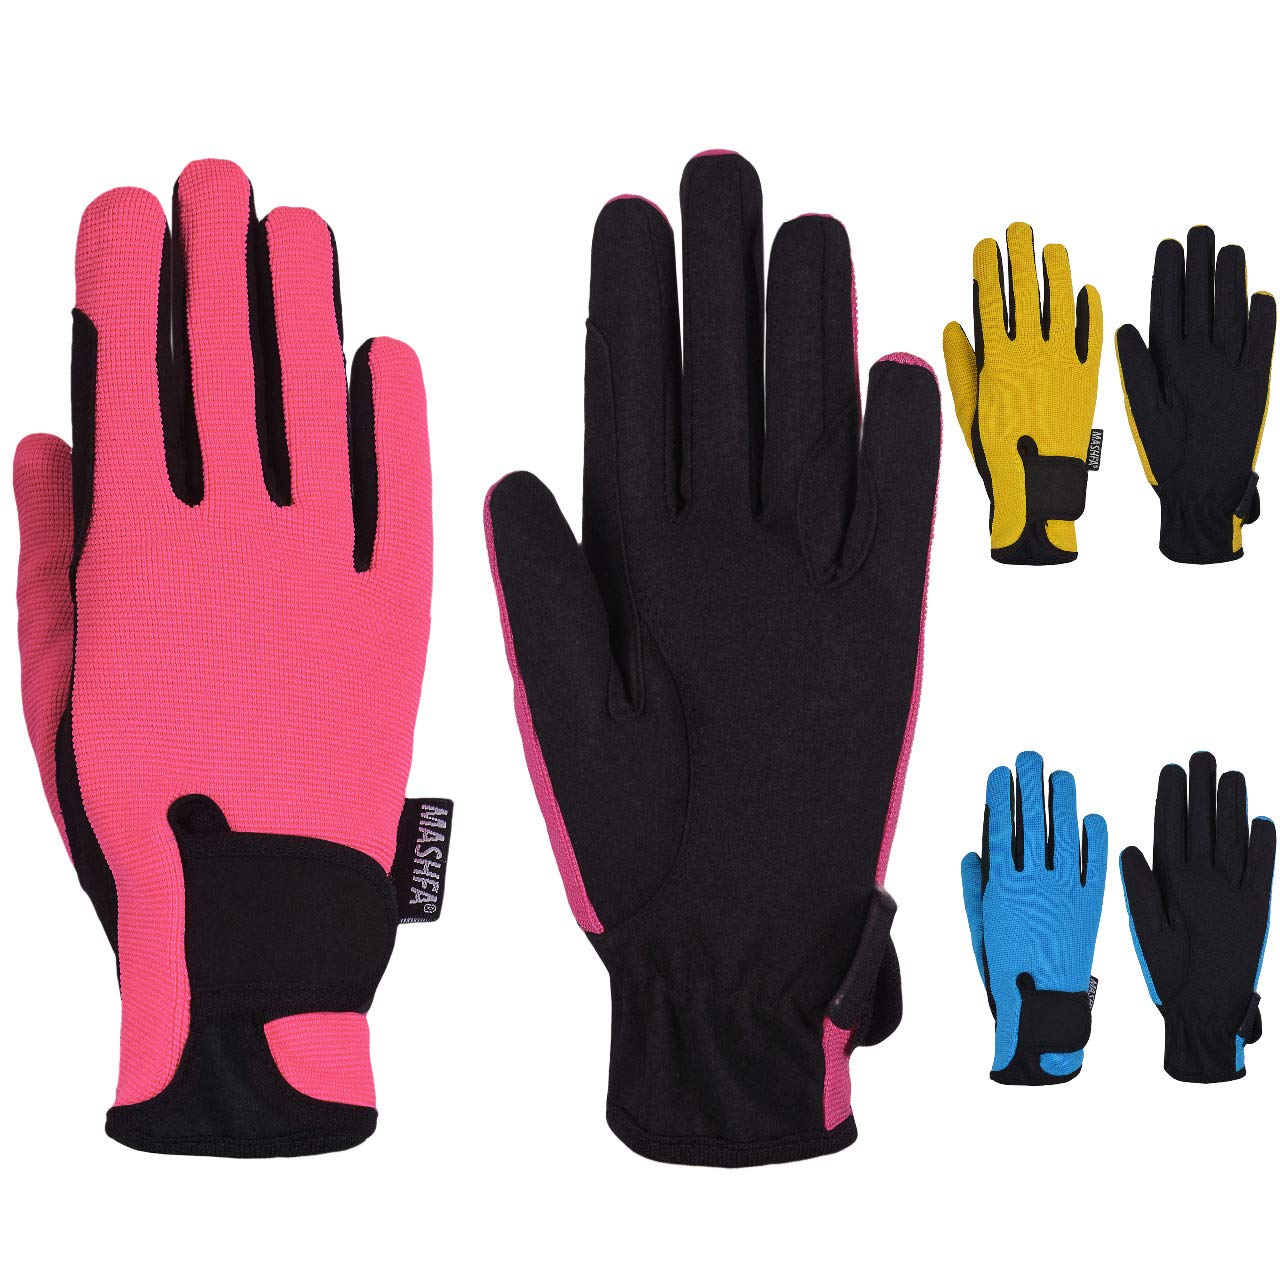 Best Rated in Equestrian Riding Gloves & Helpful Customer